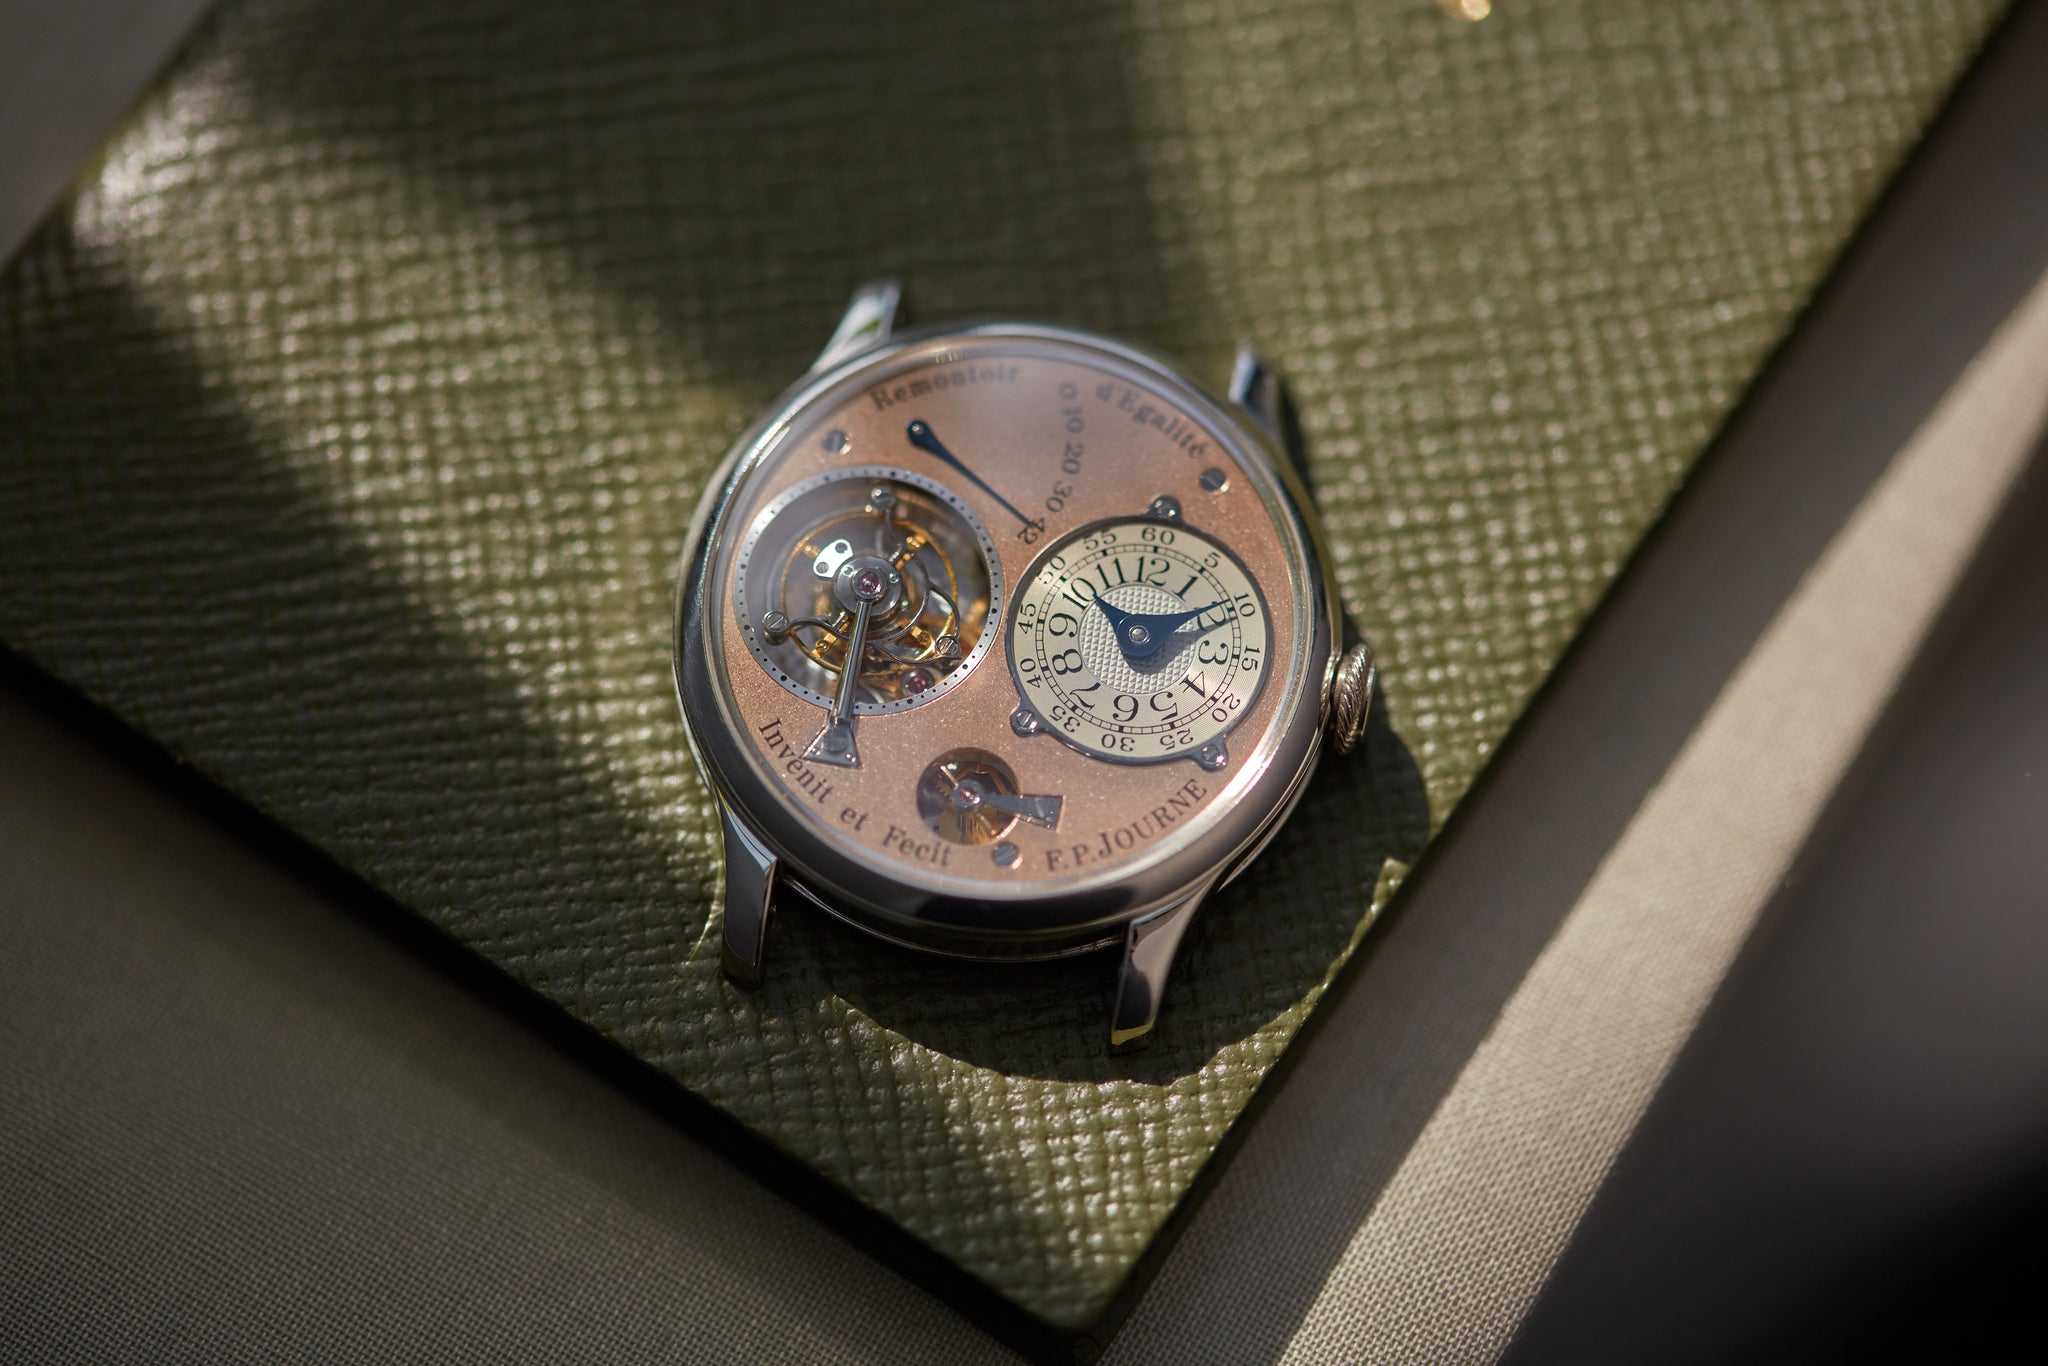 F.P. Journe Toubillon Souverain third generation with a rose dial shot by A Collected Man London